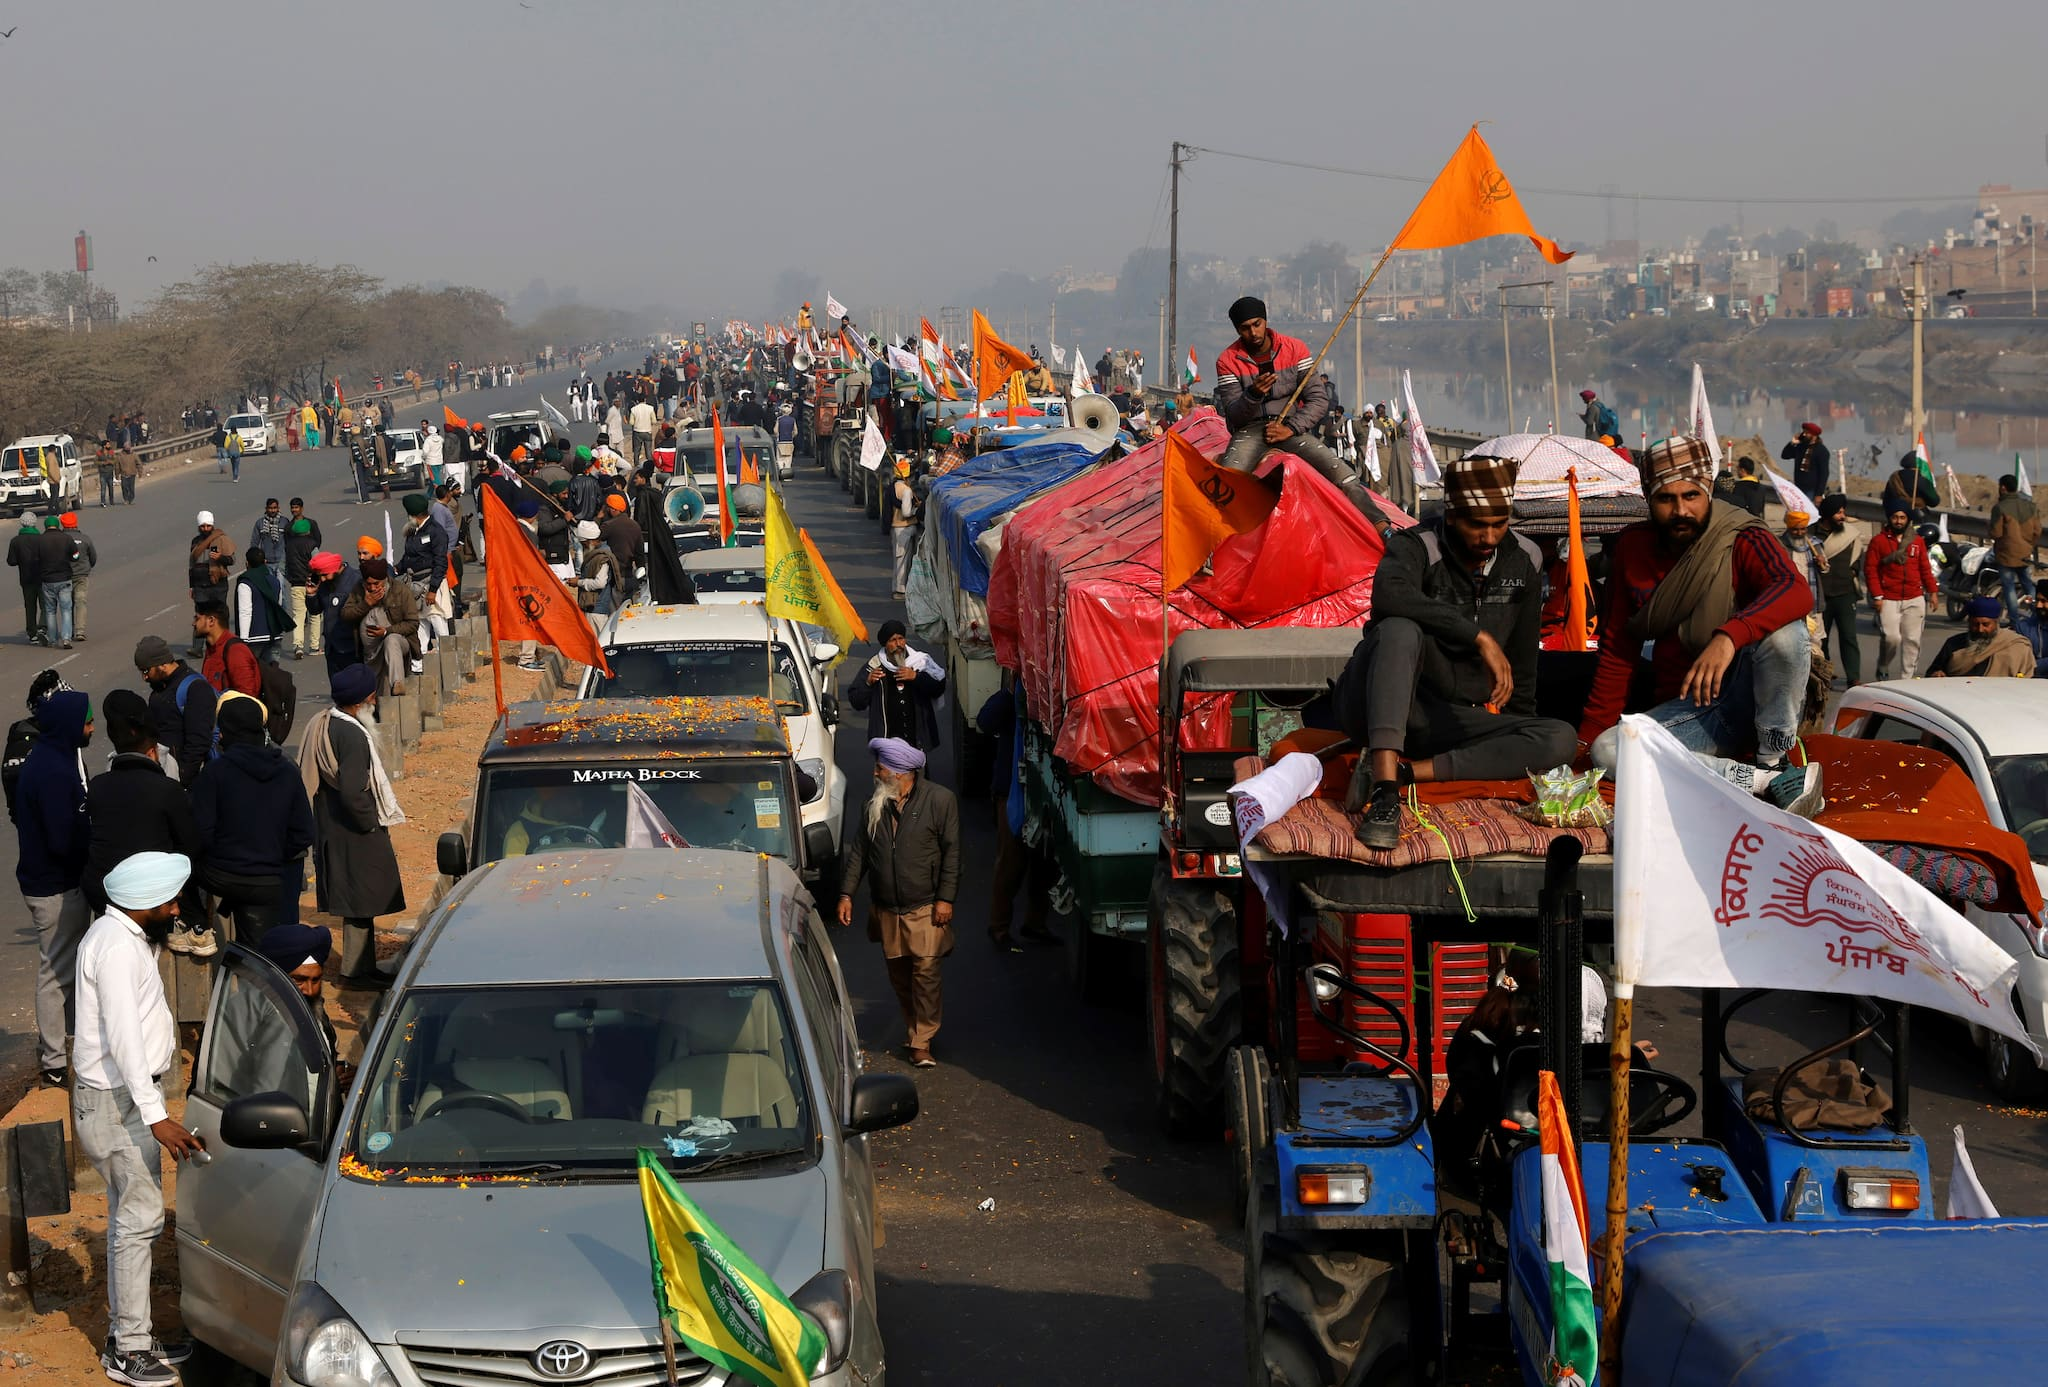 In Pics | Farmers' Protest Rally On Republic Day 2021